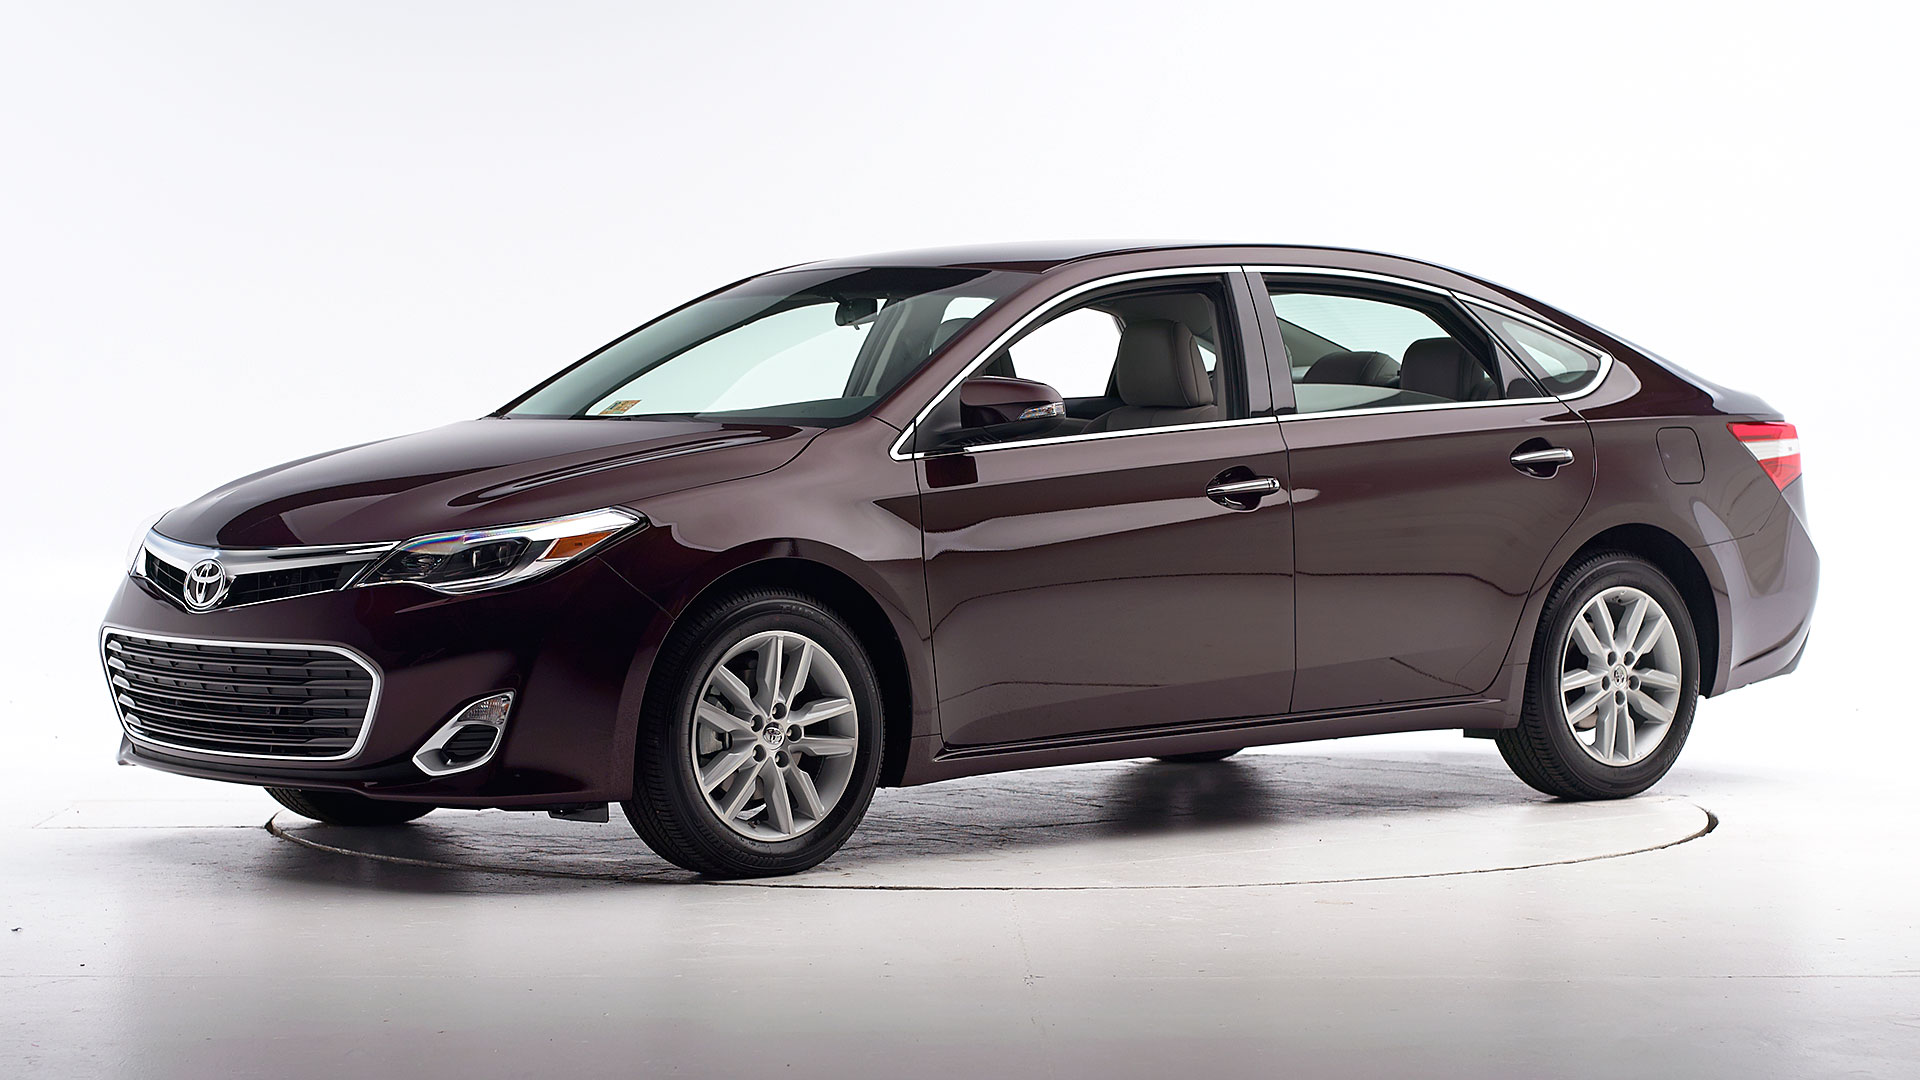 2015 Toyota Avalon 4-door sedan